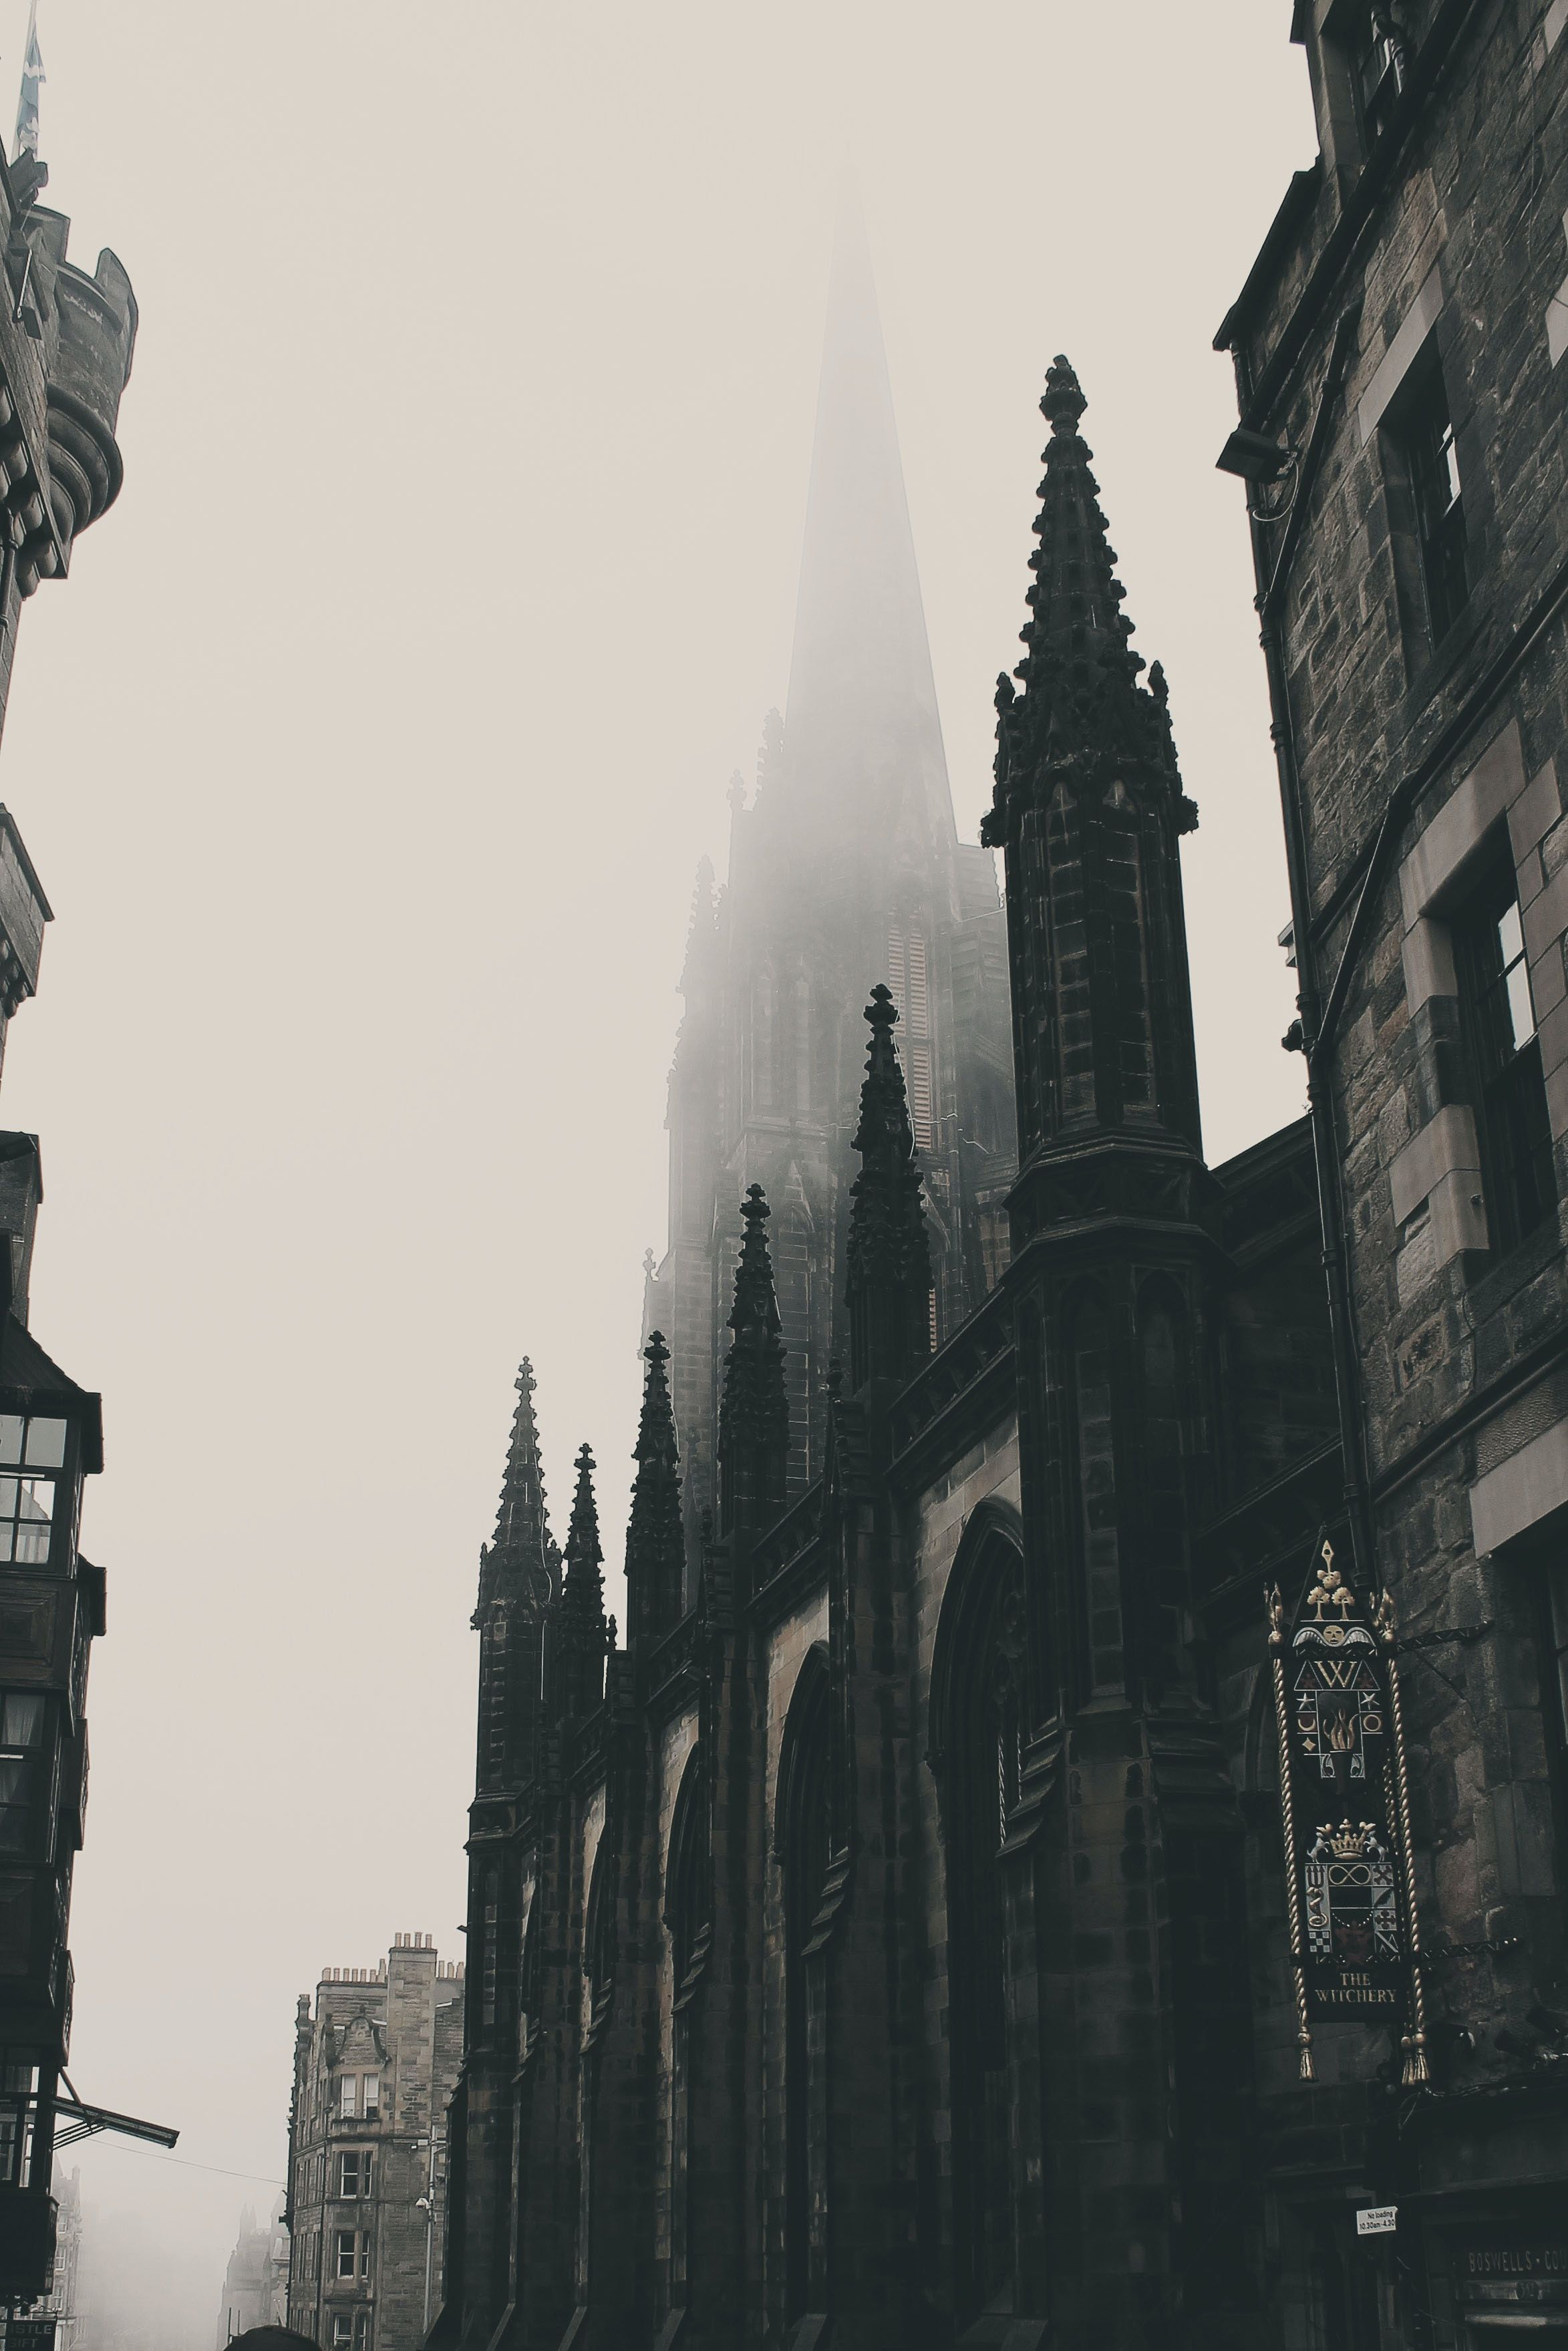 World Goth Day Images Details About Gothic Subculture That You Need To Check Out See more ideas about victorian, aesthetic, dark aesthetic. world goth day images details about